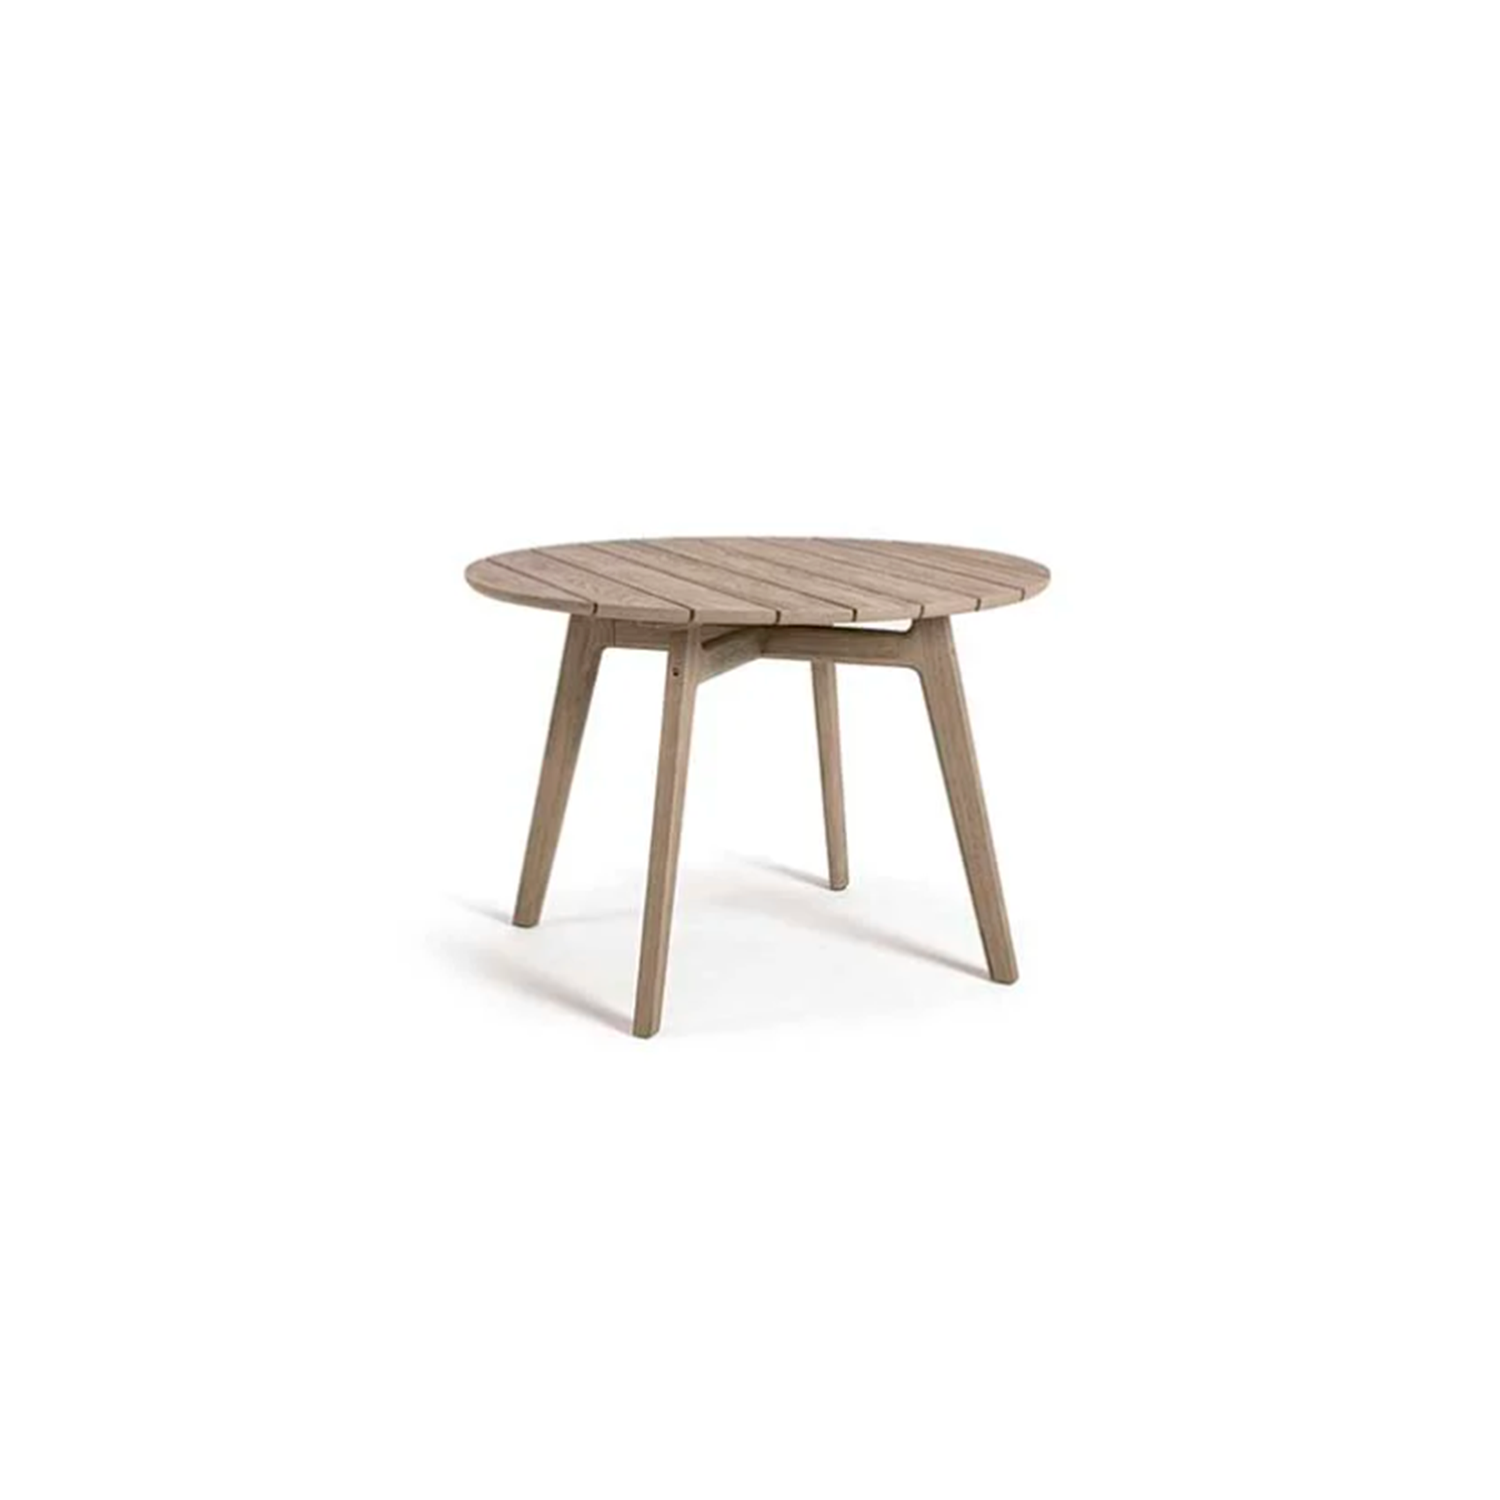 Knit Round Dining Table - Knit is a complete line of tables, chairs and lounge chairs in teak and woven rope that expresses with refinement a perfect synthesis of aesthetics, functionality and ergonomics. The iconic collection is enriched by the new version in pickled teak and light gray rope and the rocking version of the lounge chair with high back, thus offering a new and special interpretation of the classic bergère.  Rain cover is available at extra cost. Please enquire for more information.   Matter of Stuff